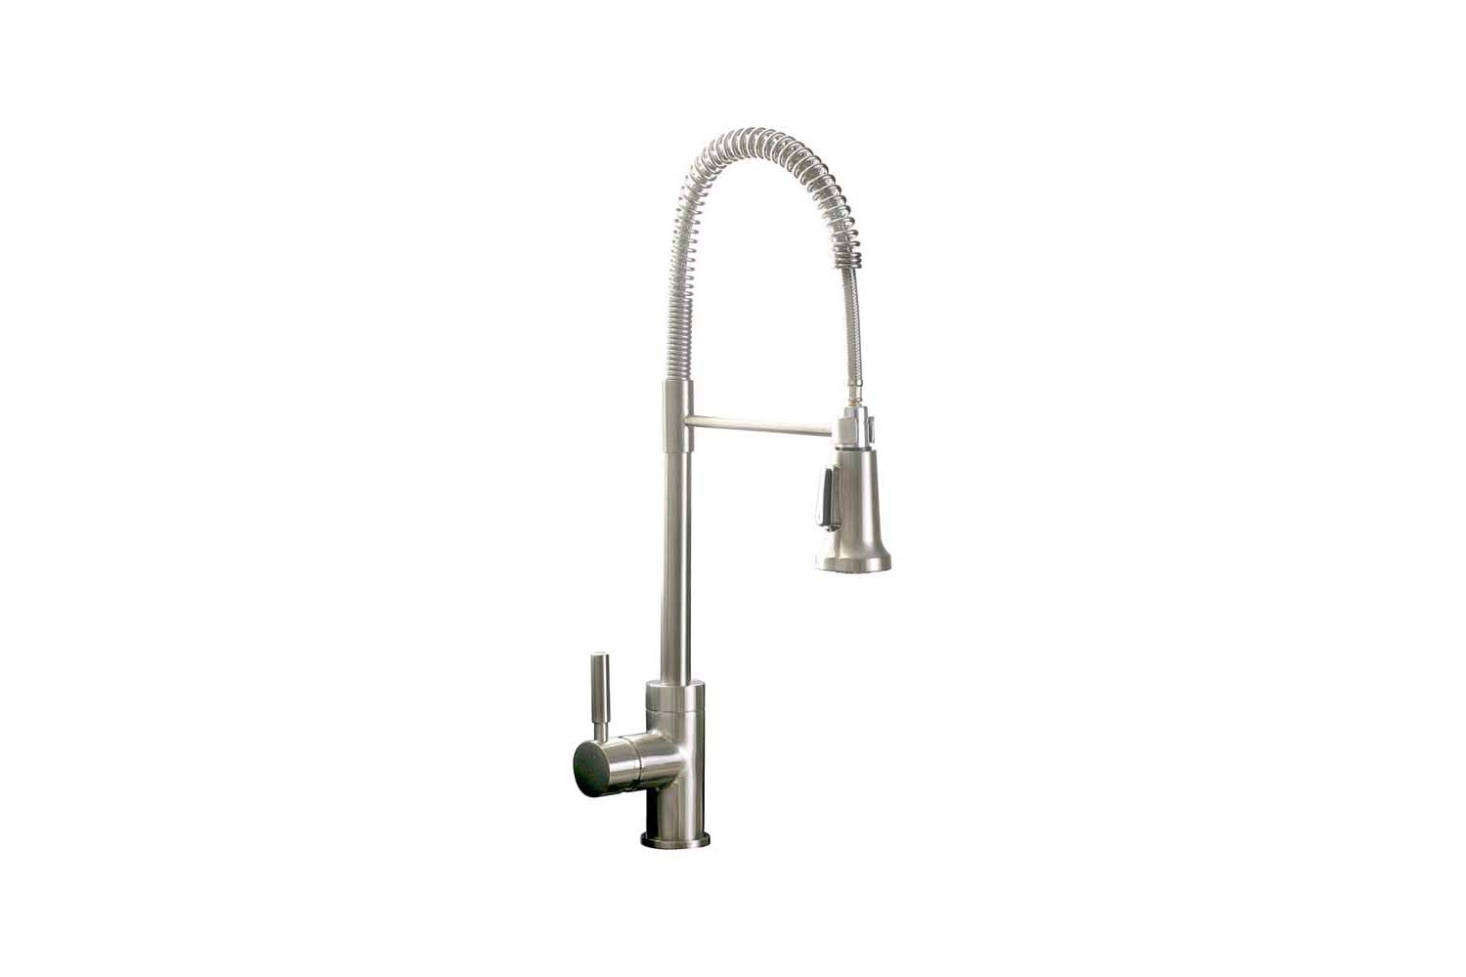 Culinary Pull Down Kitchen Faucet in